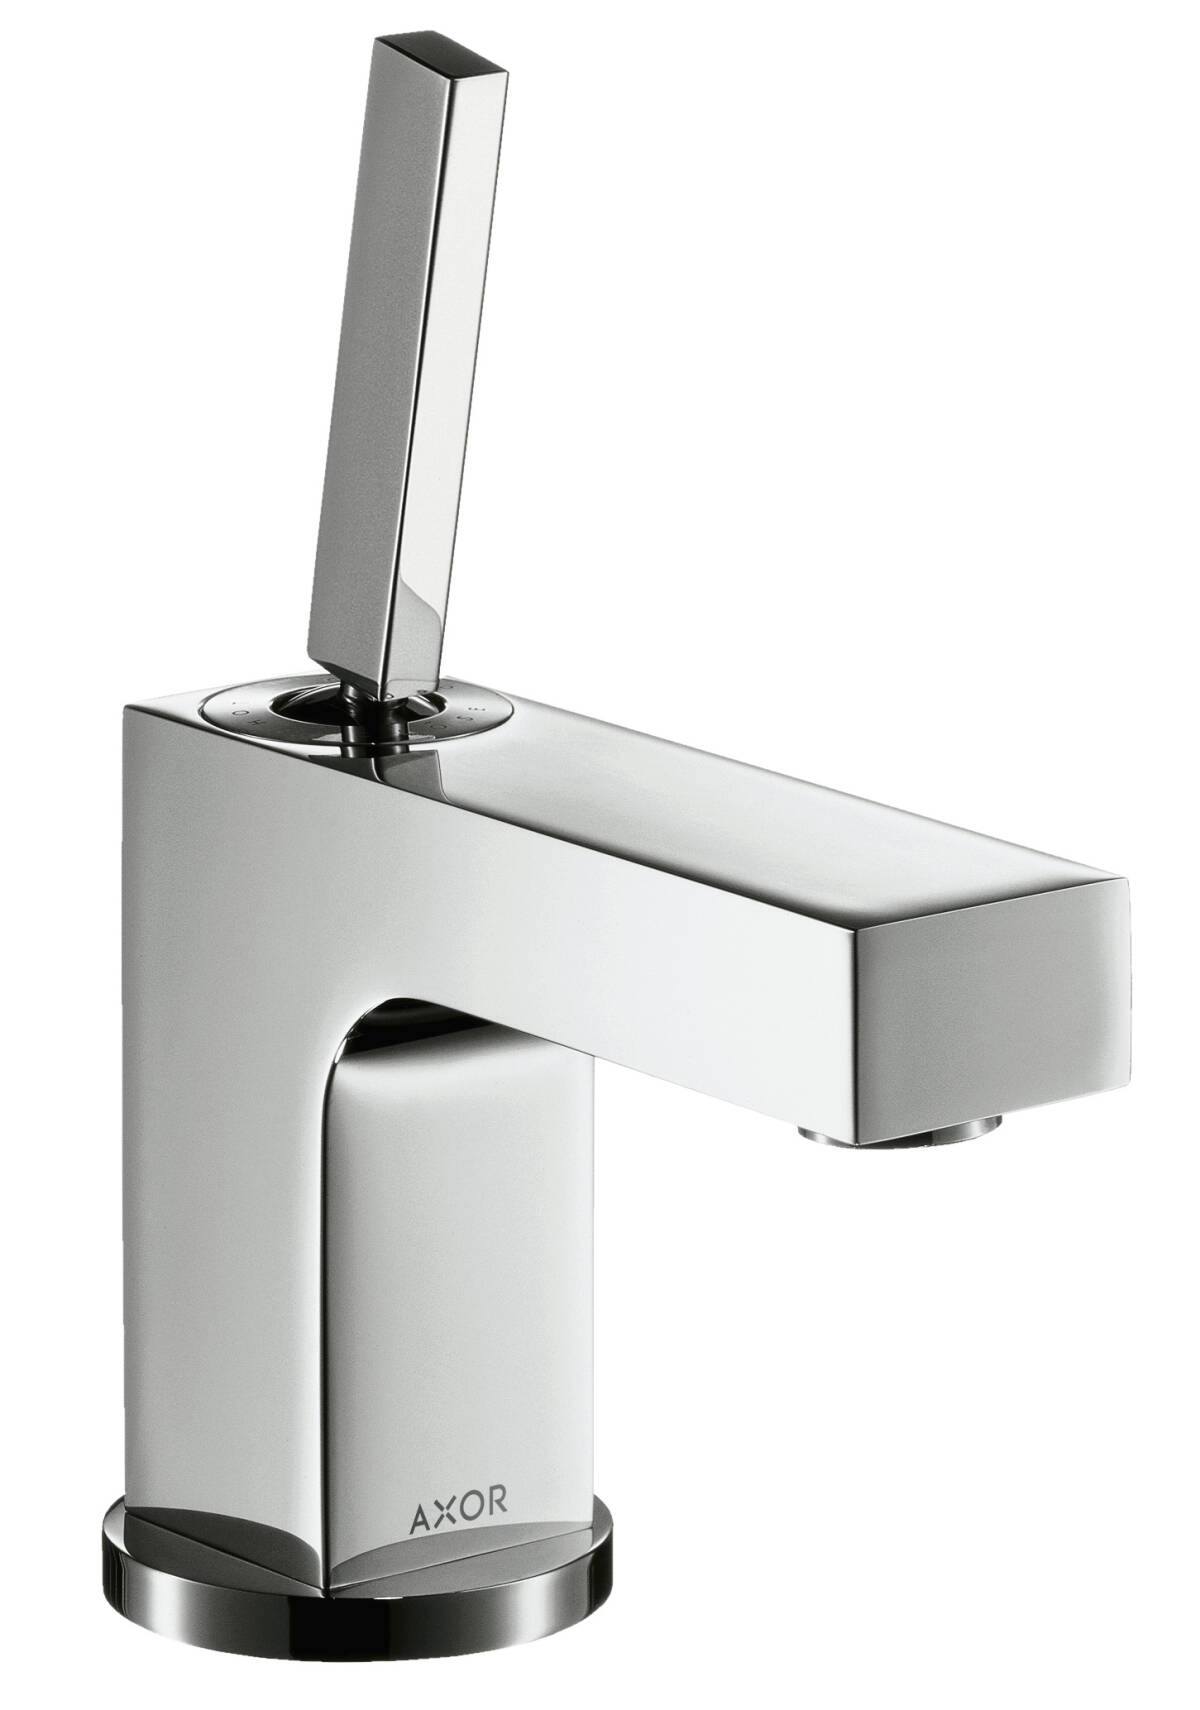 Single lever basin mixer 80 with pin handle for hand washbasins with pop-up waste set, Brushed Red Gold, 39015310